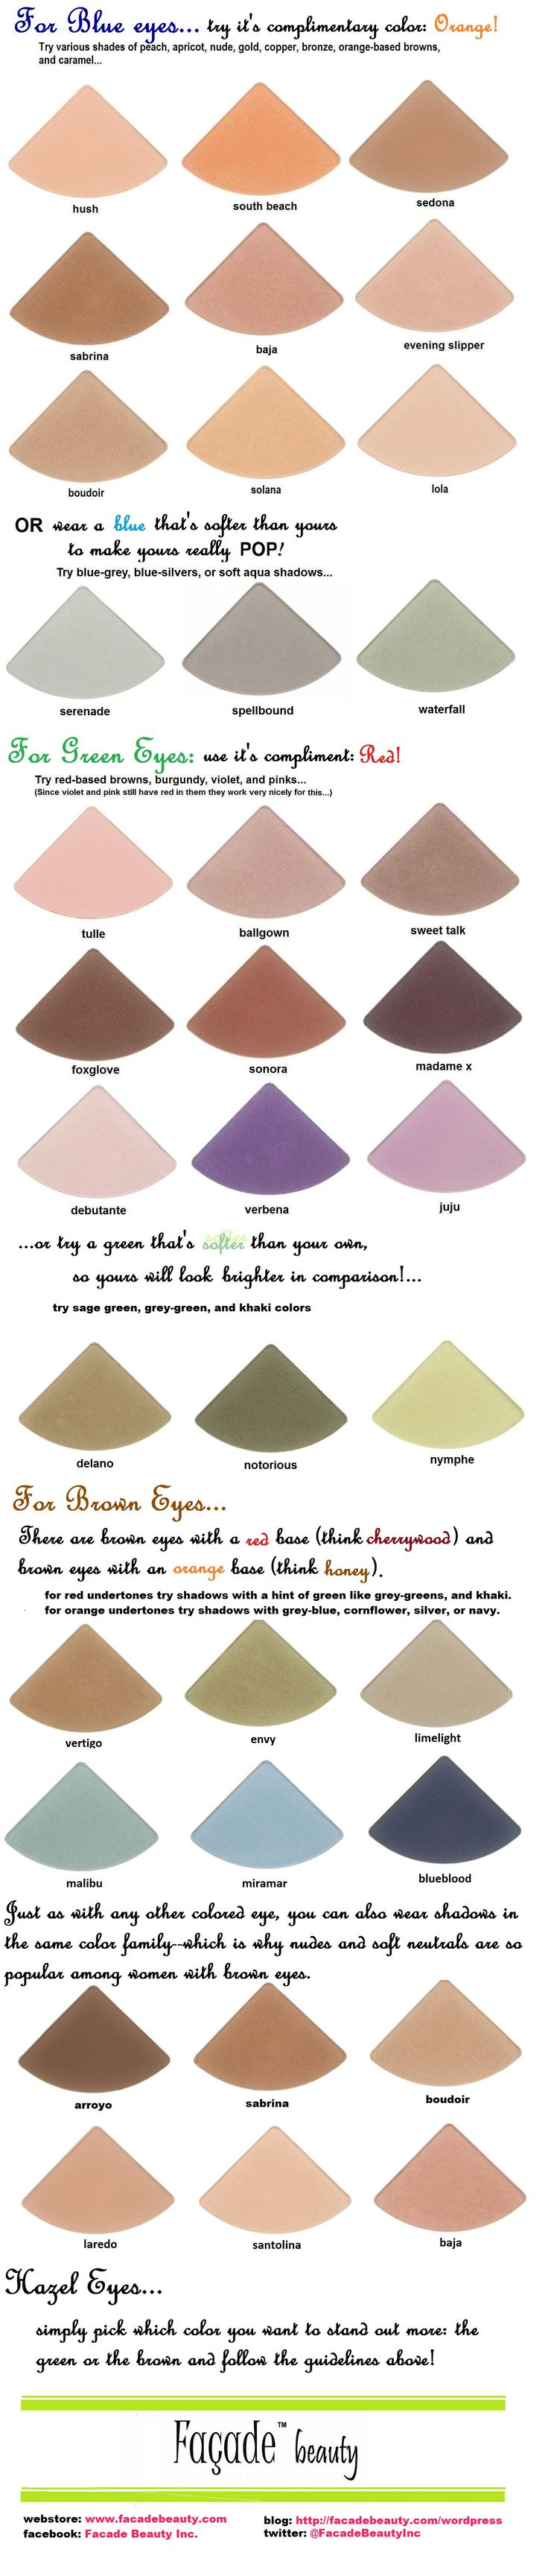 Excellent chart for best eyeshadows for blue, green, brown & hazel eyes